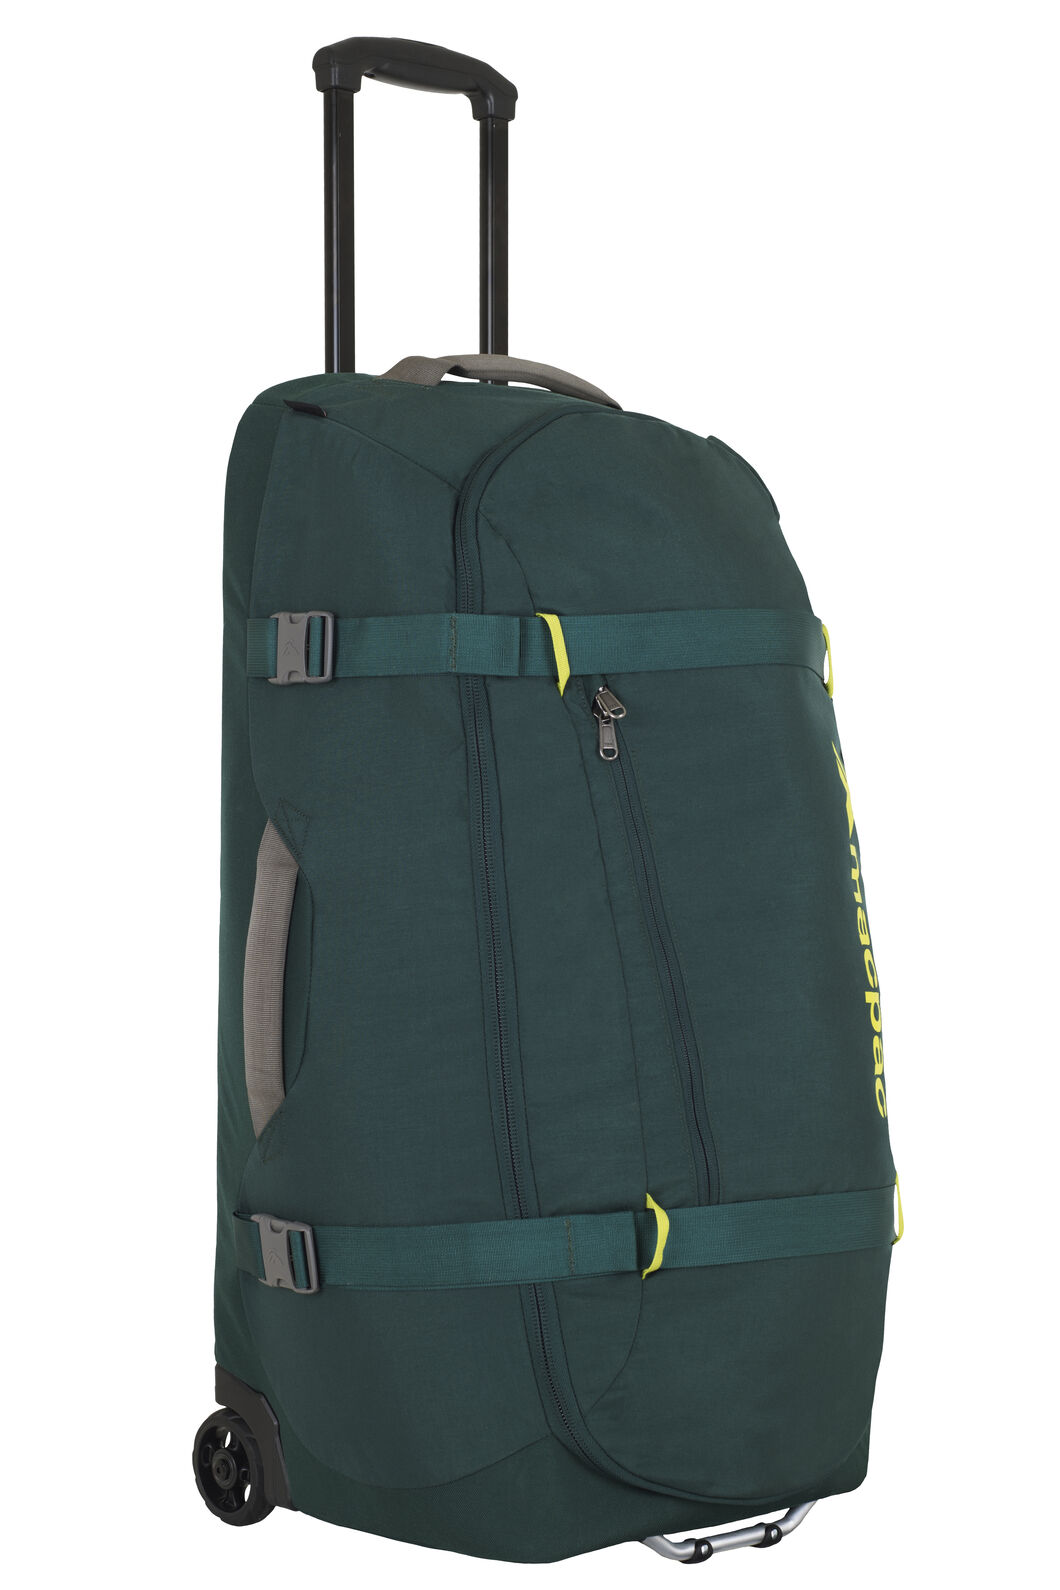 Global 80L Travel Bag, Ponderosa Pine, hi-res